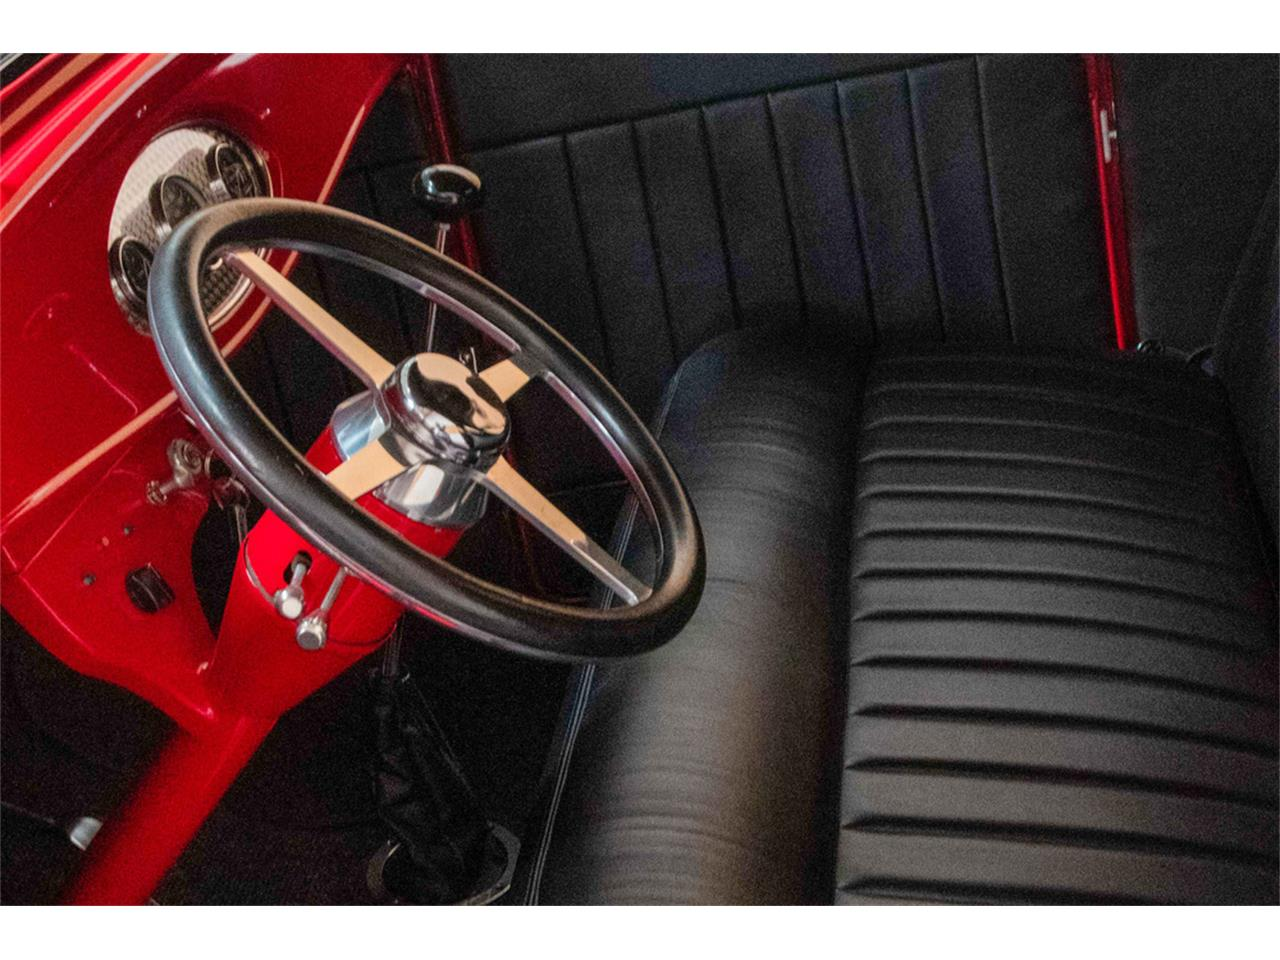 Large Picture of Classic 1932 Ford Roadster located in Las Vegas Nevada Auction Vehicle Offered by Barrett-Jackson - QYTP